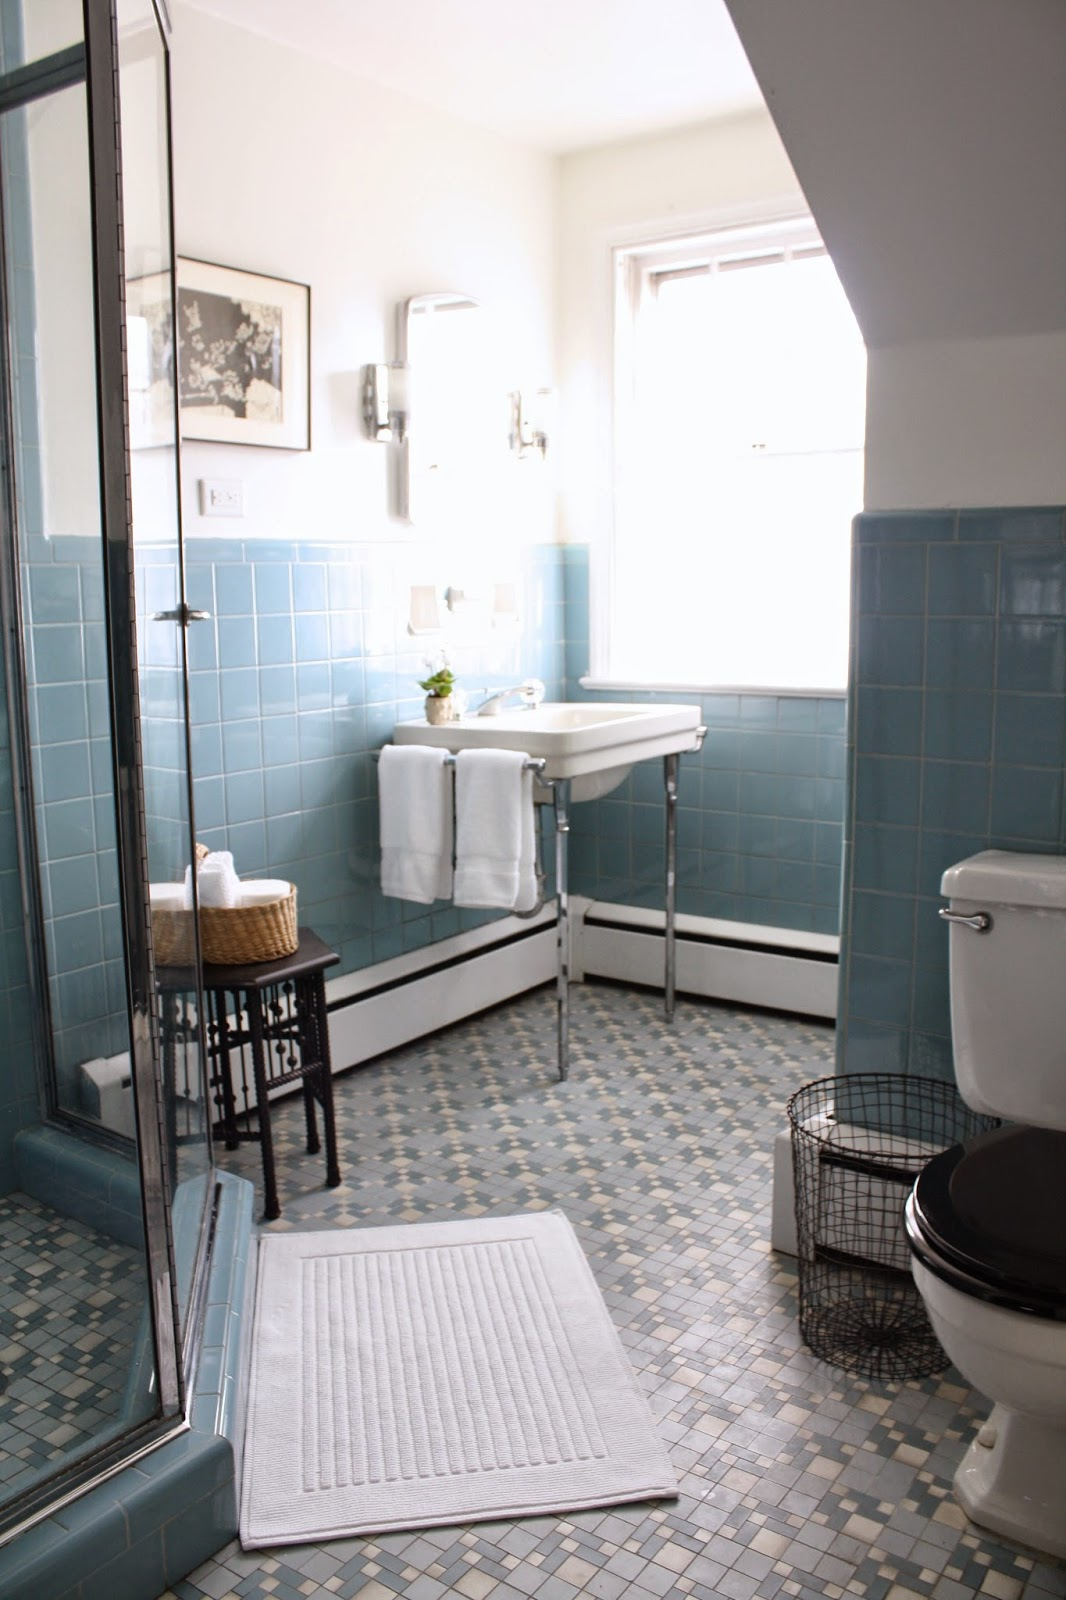 33 amazing pictures and ideas of old fashioned bathroom - Old fashioned bathroom furniture ...